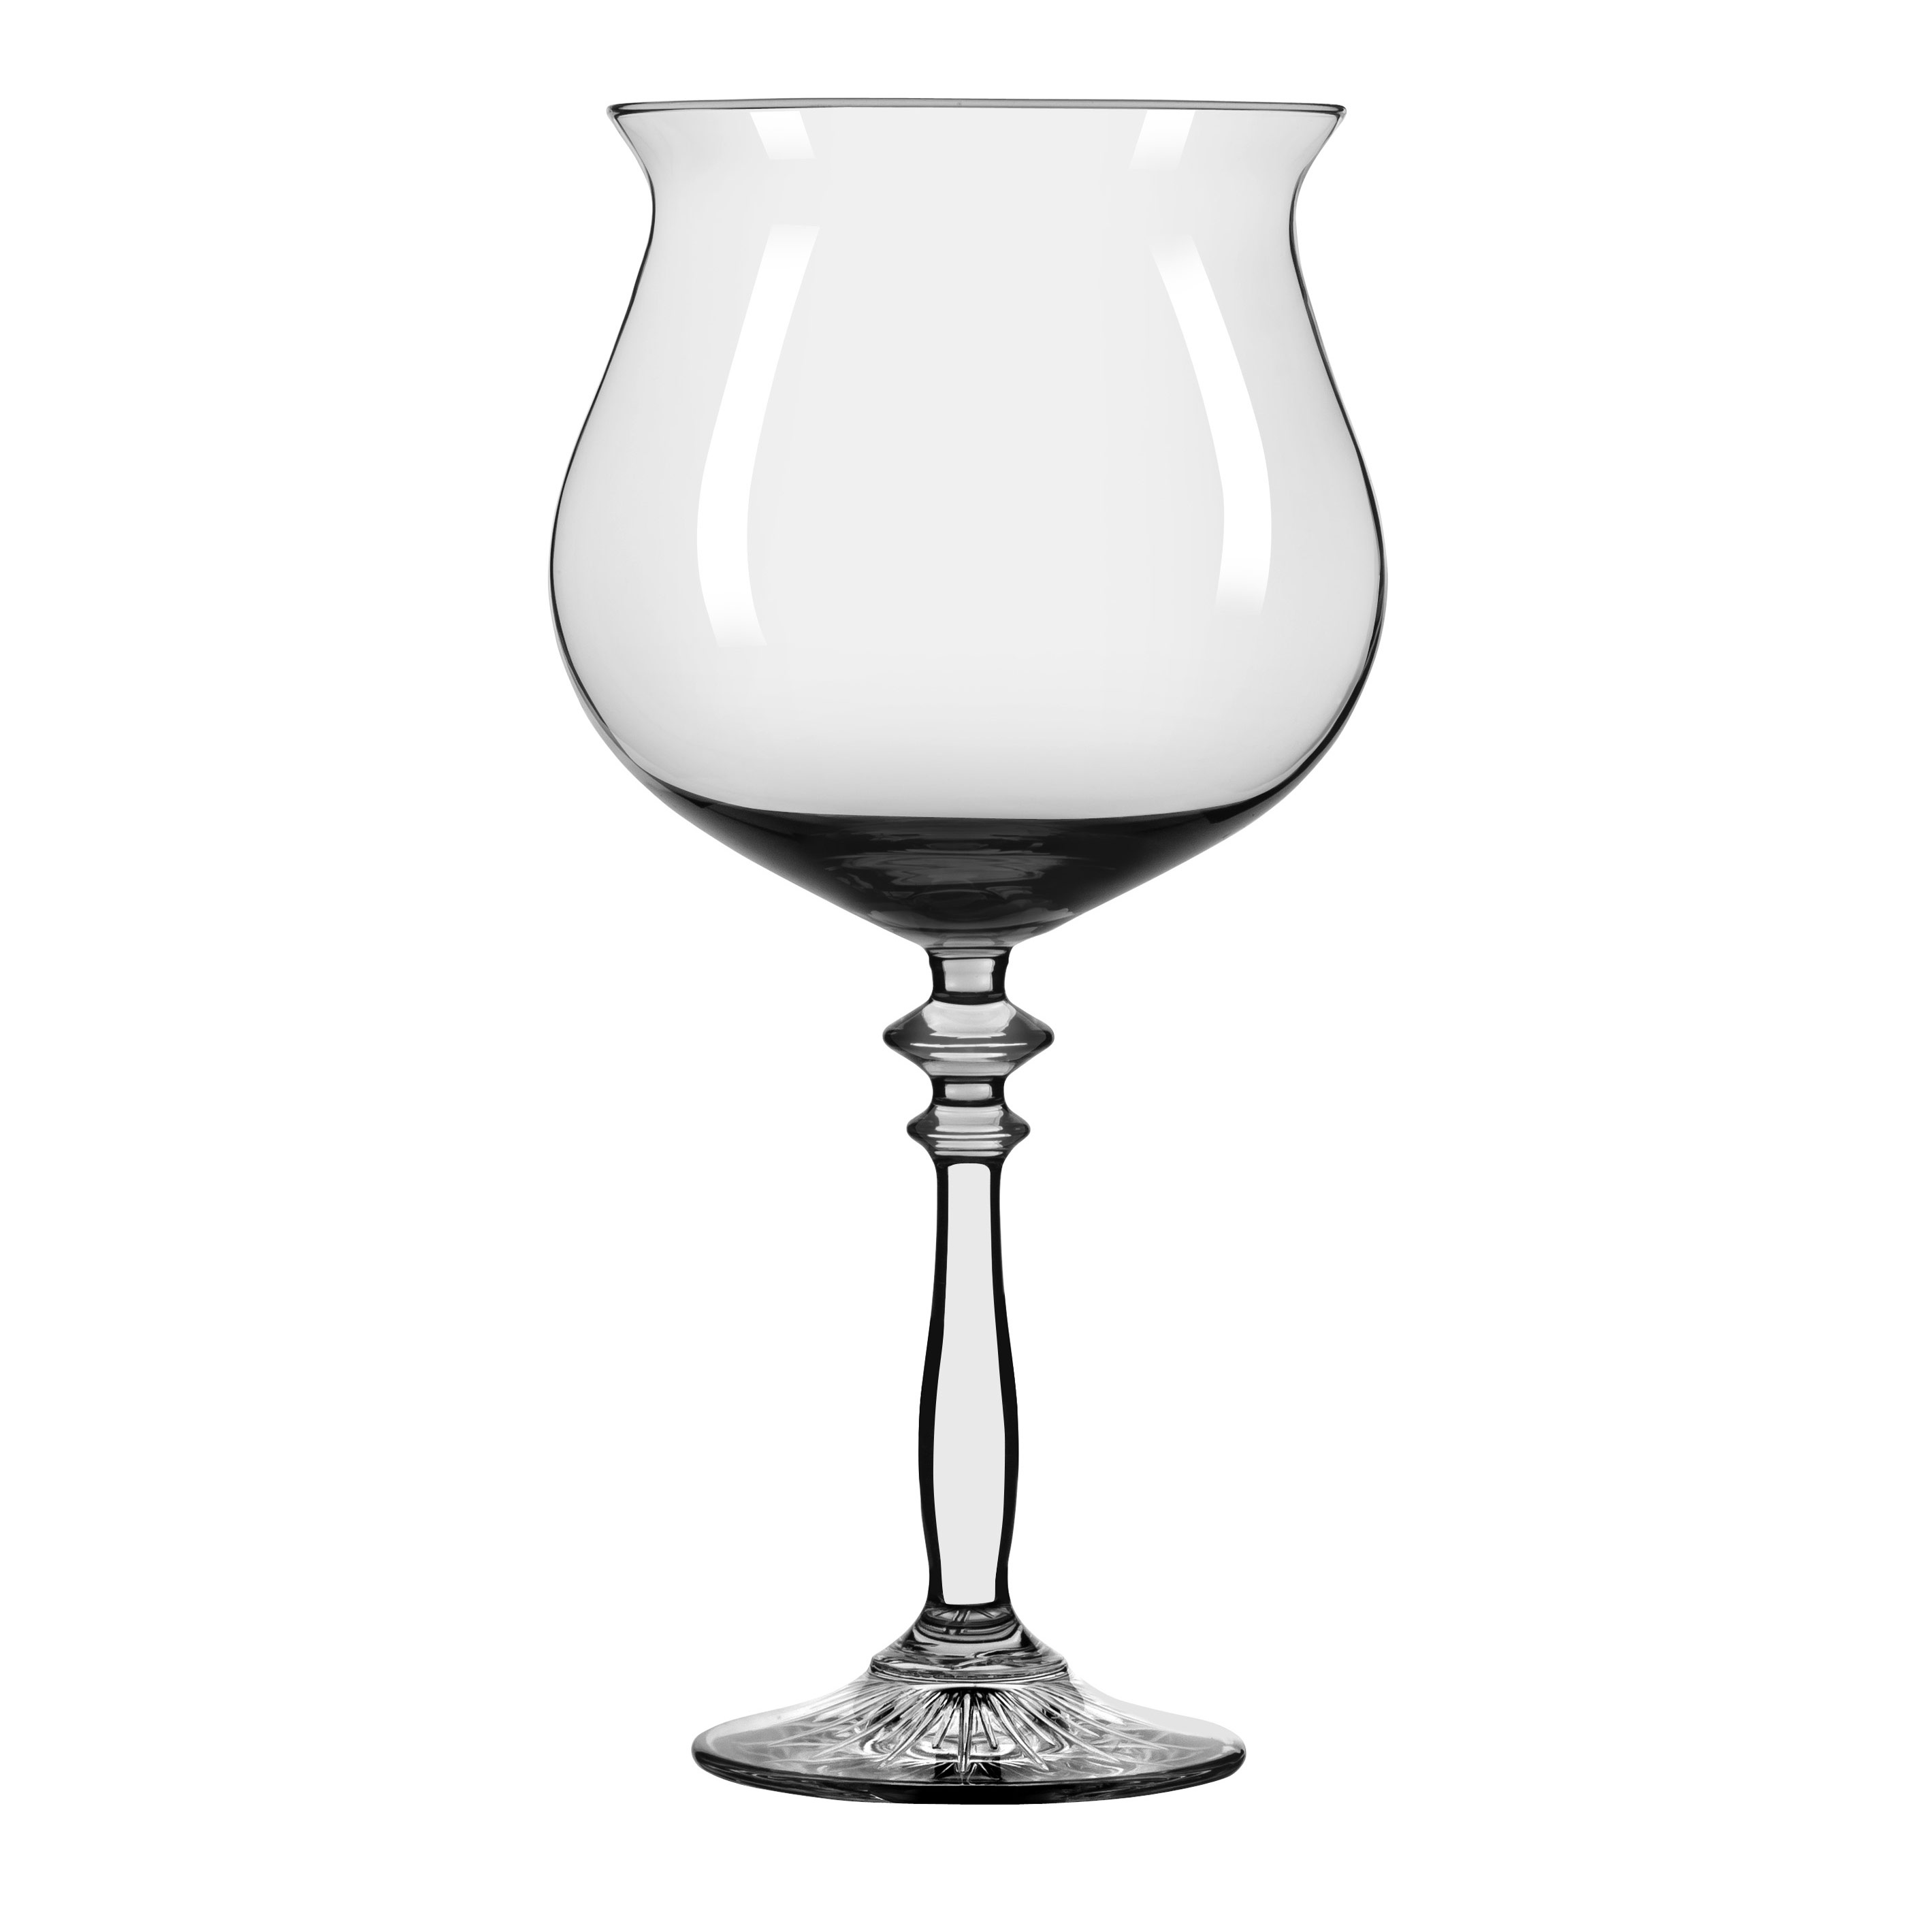 Libbey Glass 502008 glass, cocktail / martini